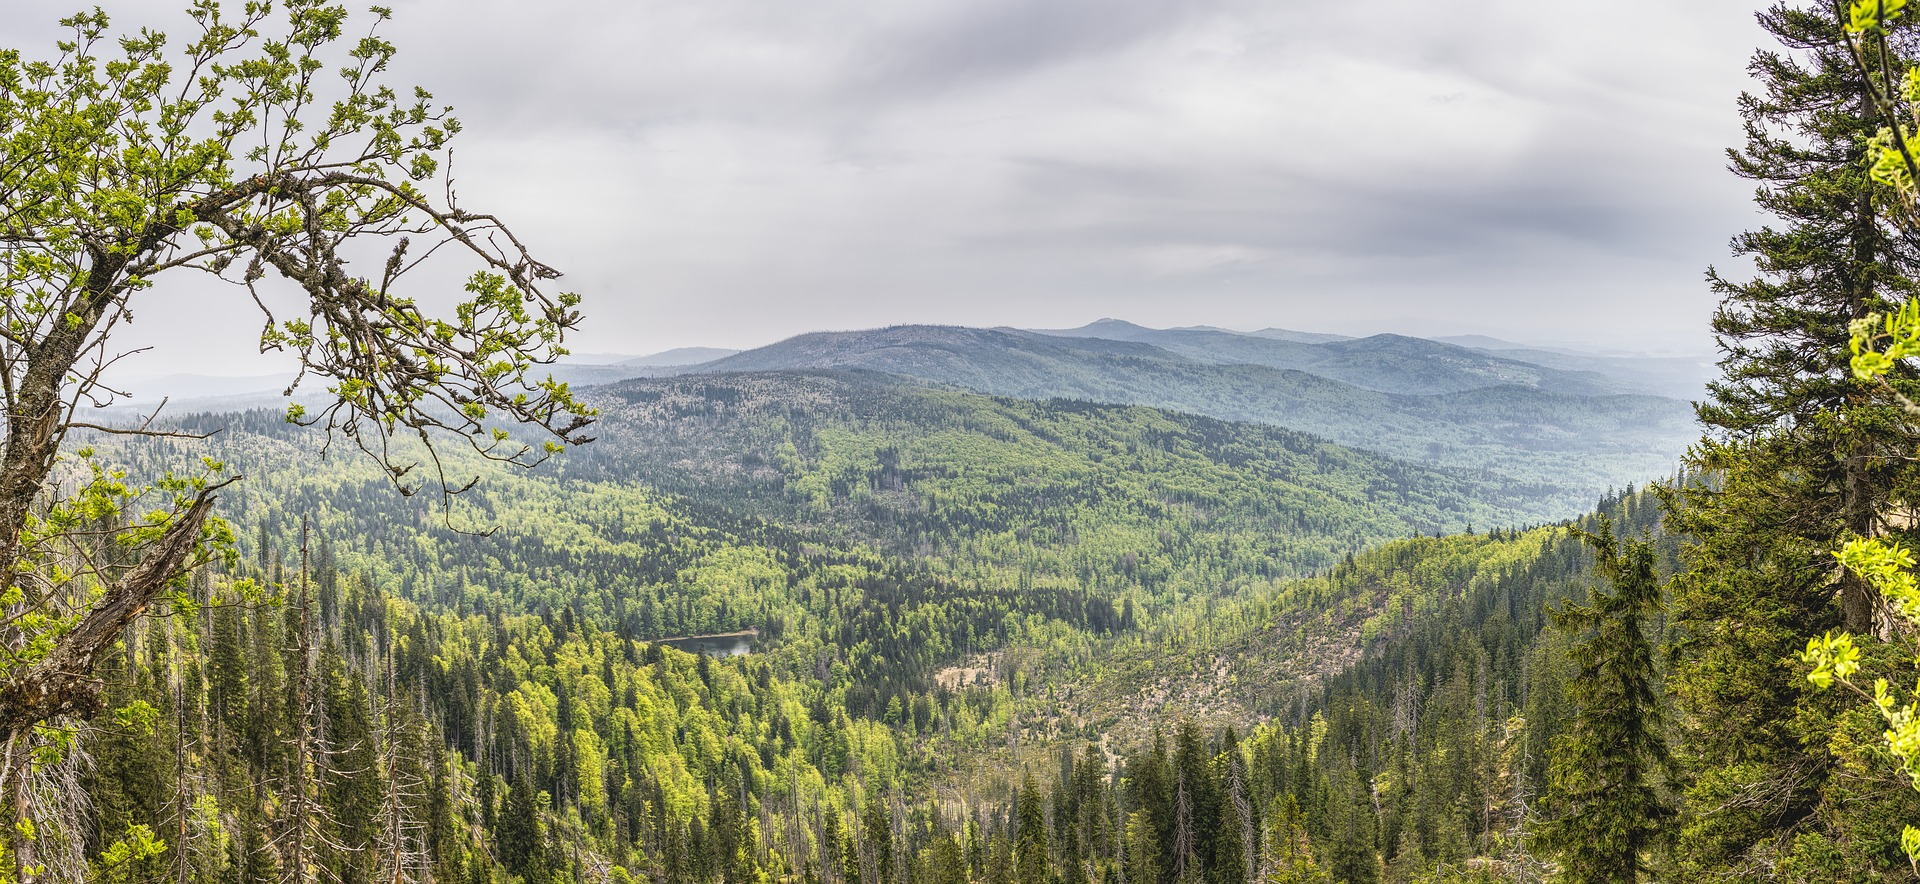 Mountain hikes in bavarian forest